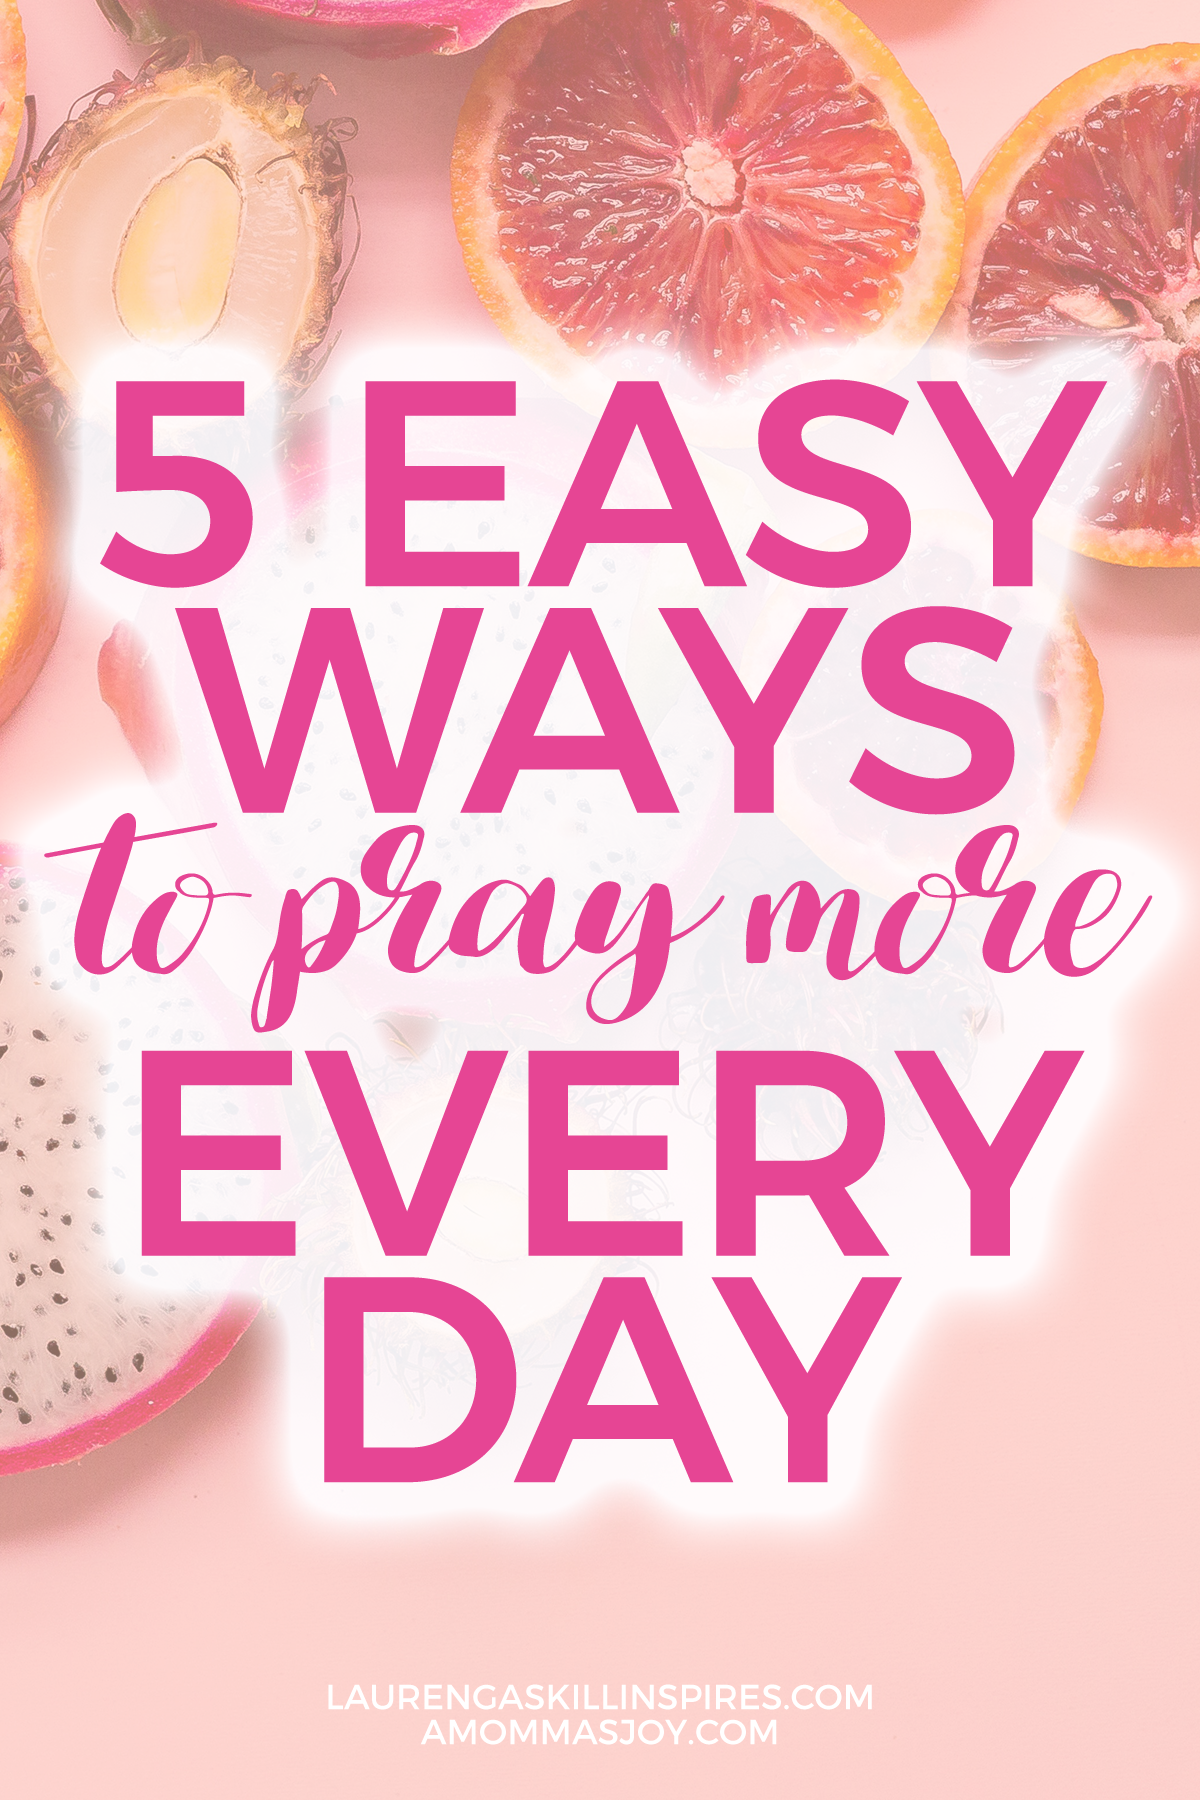 Five Easy Ways to Pray More Every Day